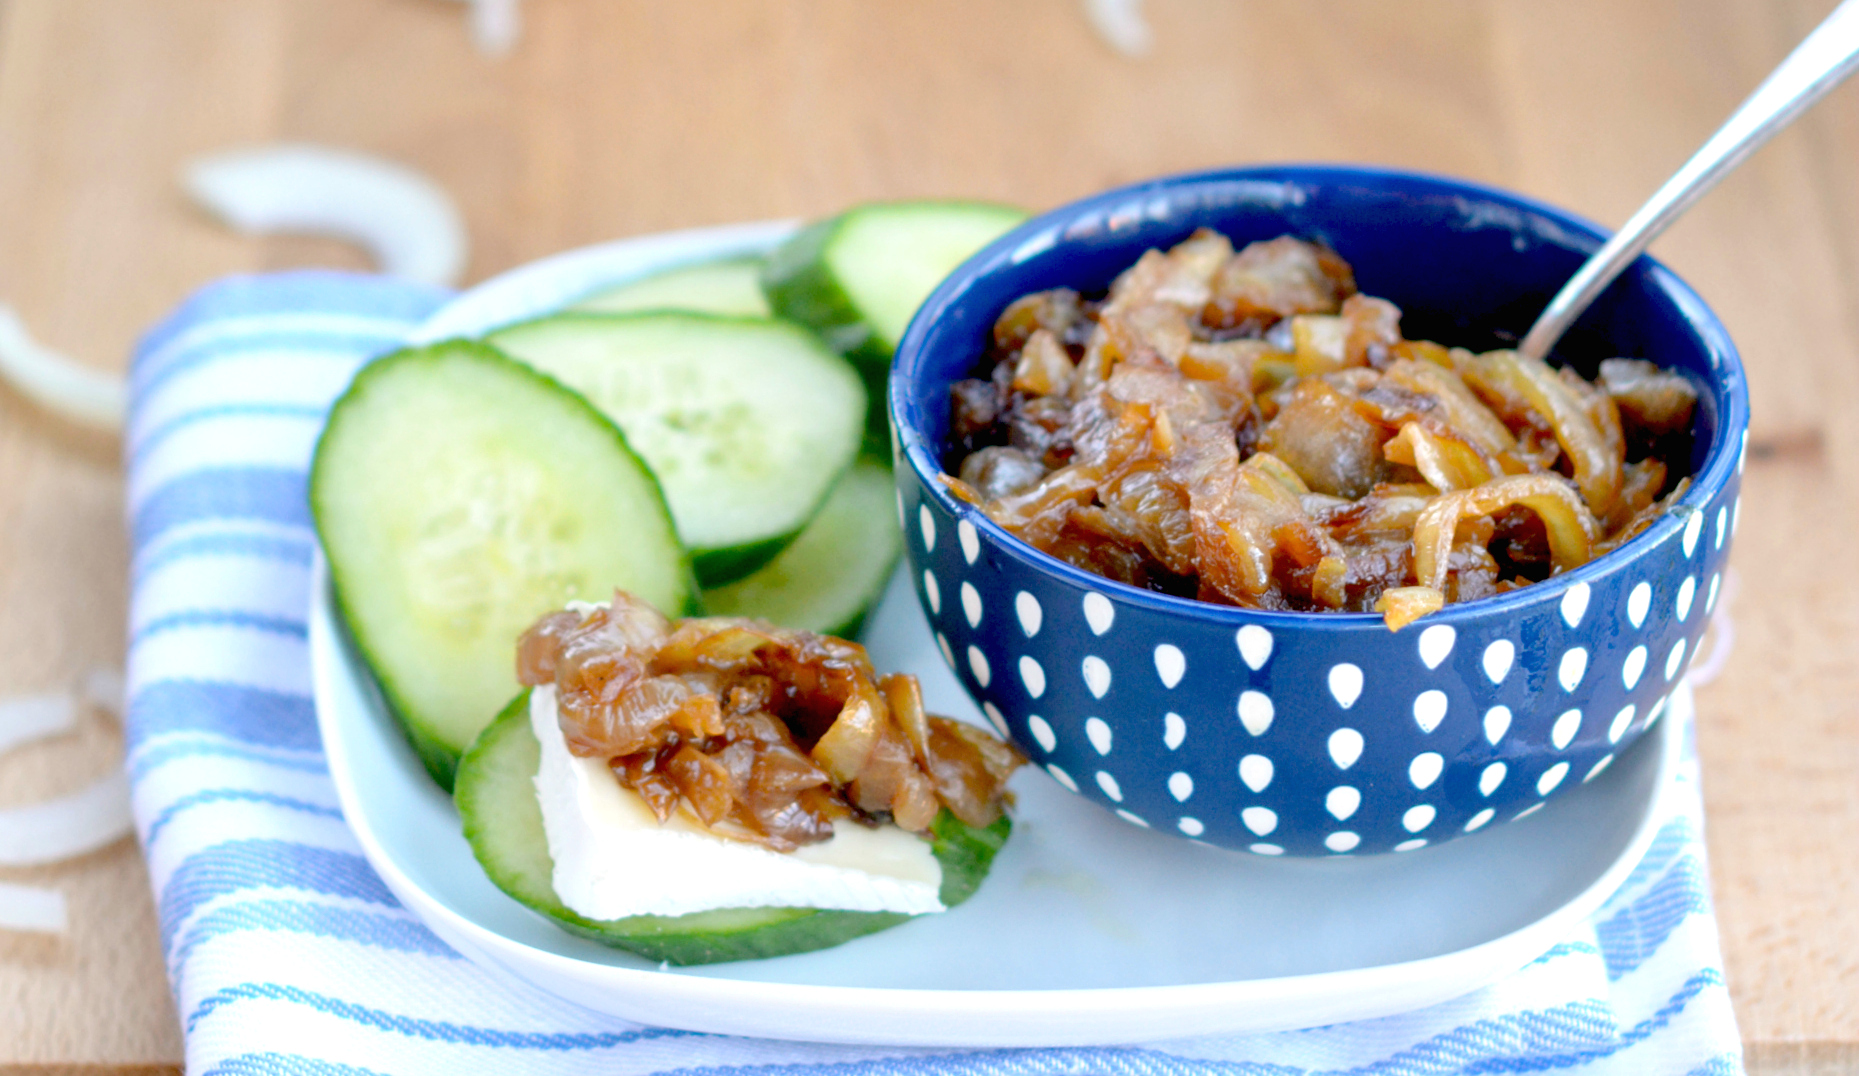 Caramelized Onions with Brie on Cucumber